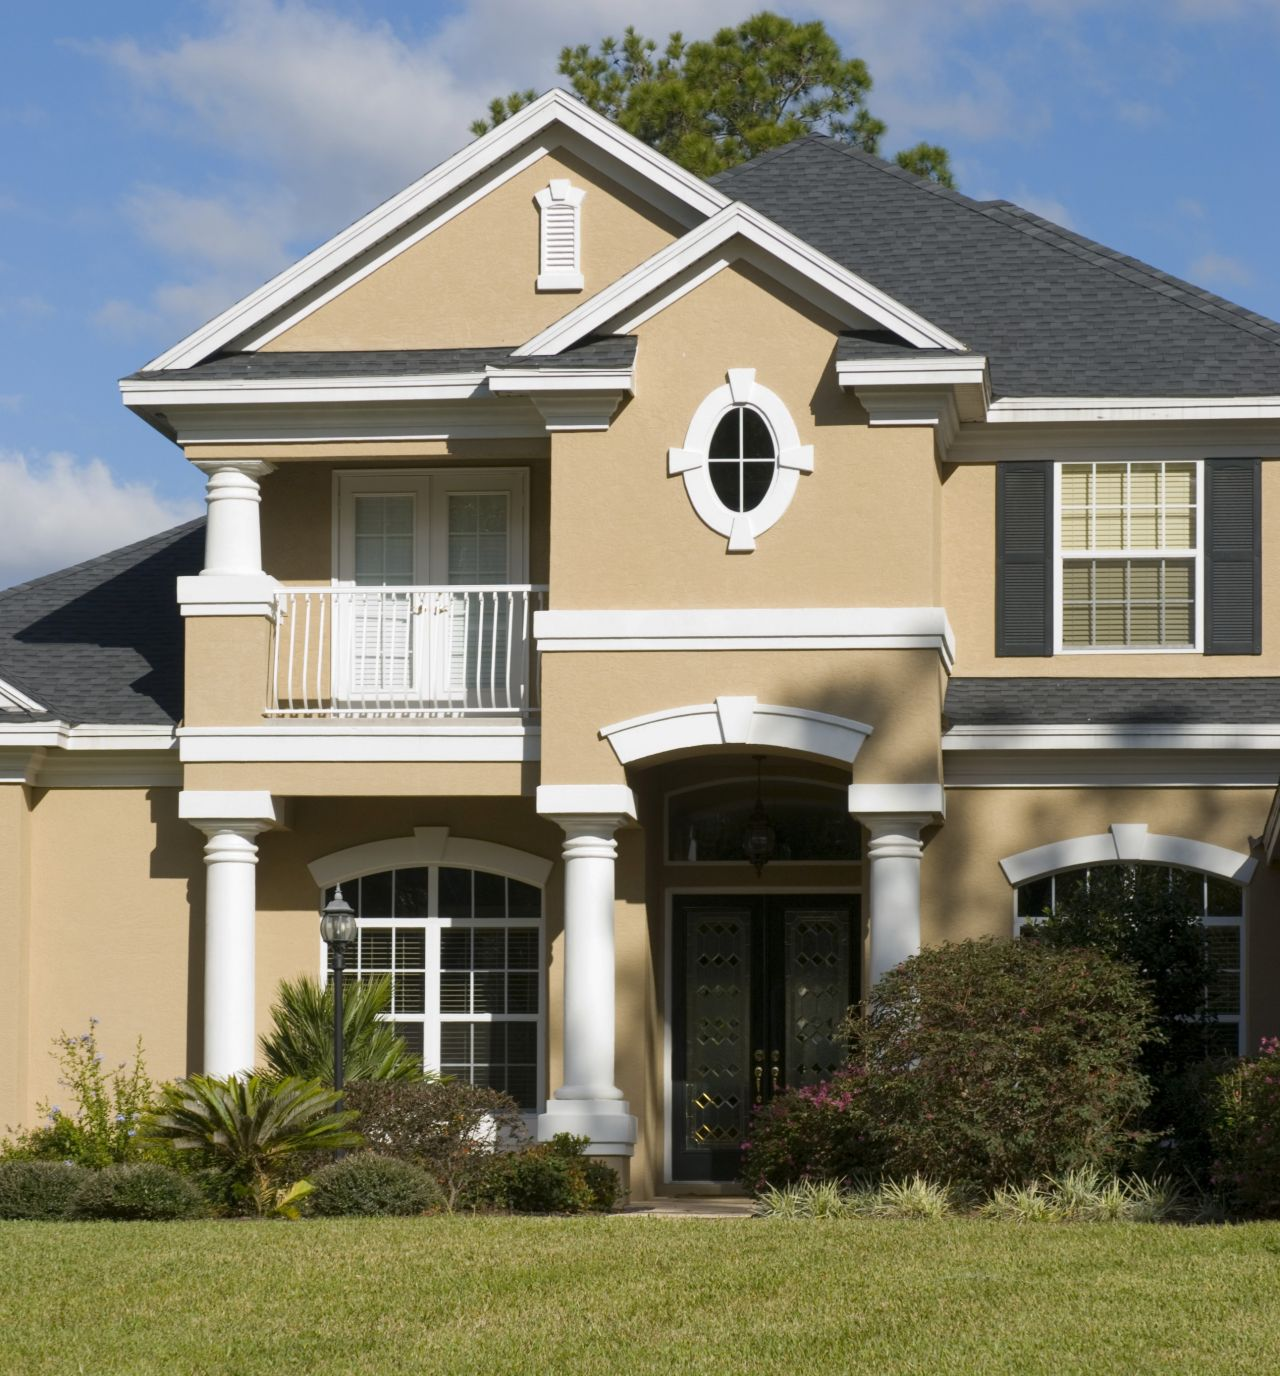 Exterior paint schemes and consider your surroundings for Exterior home paint colors